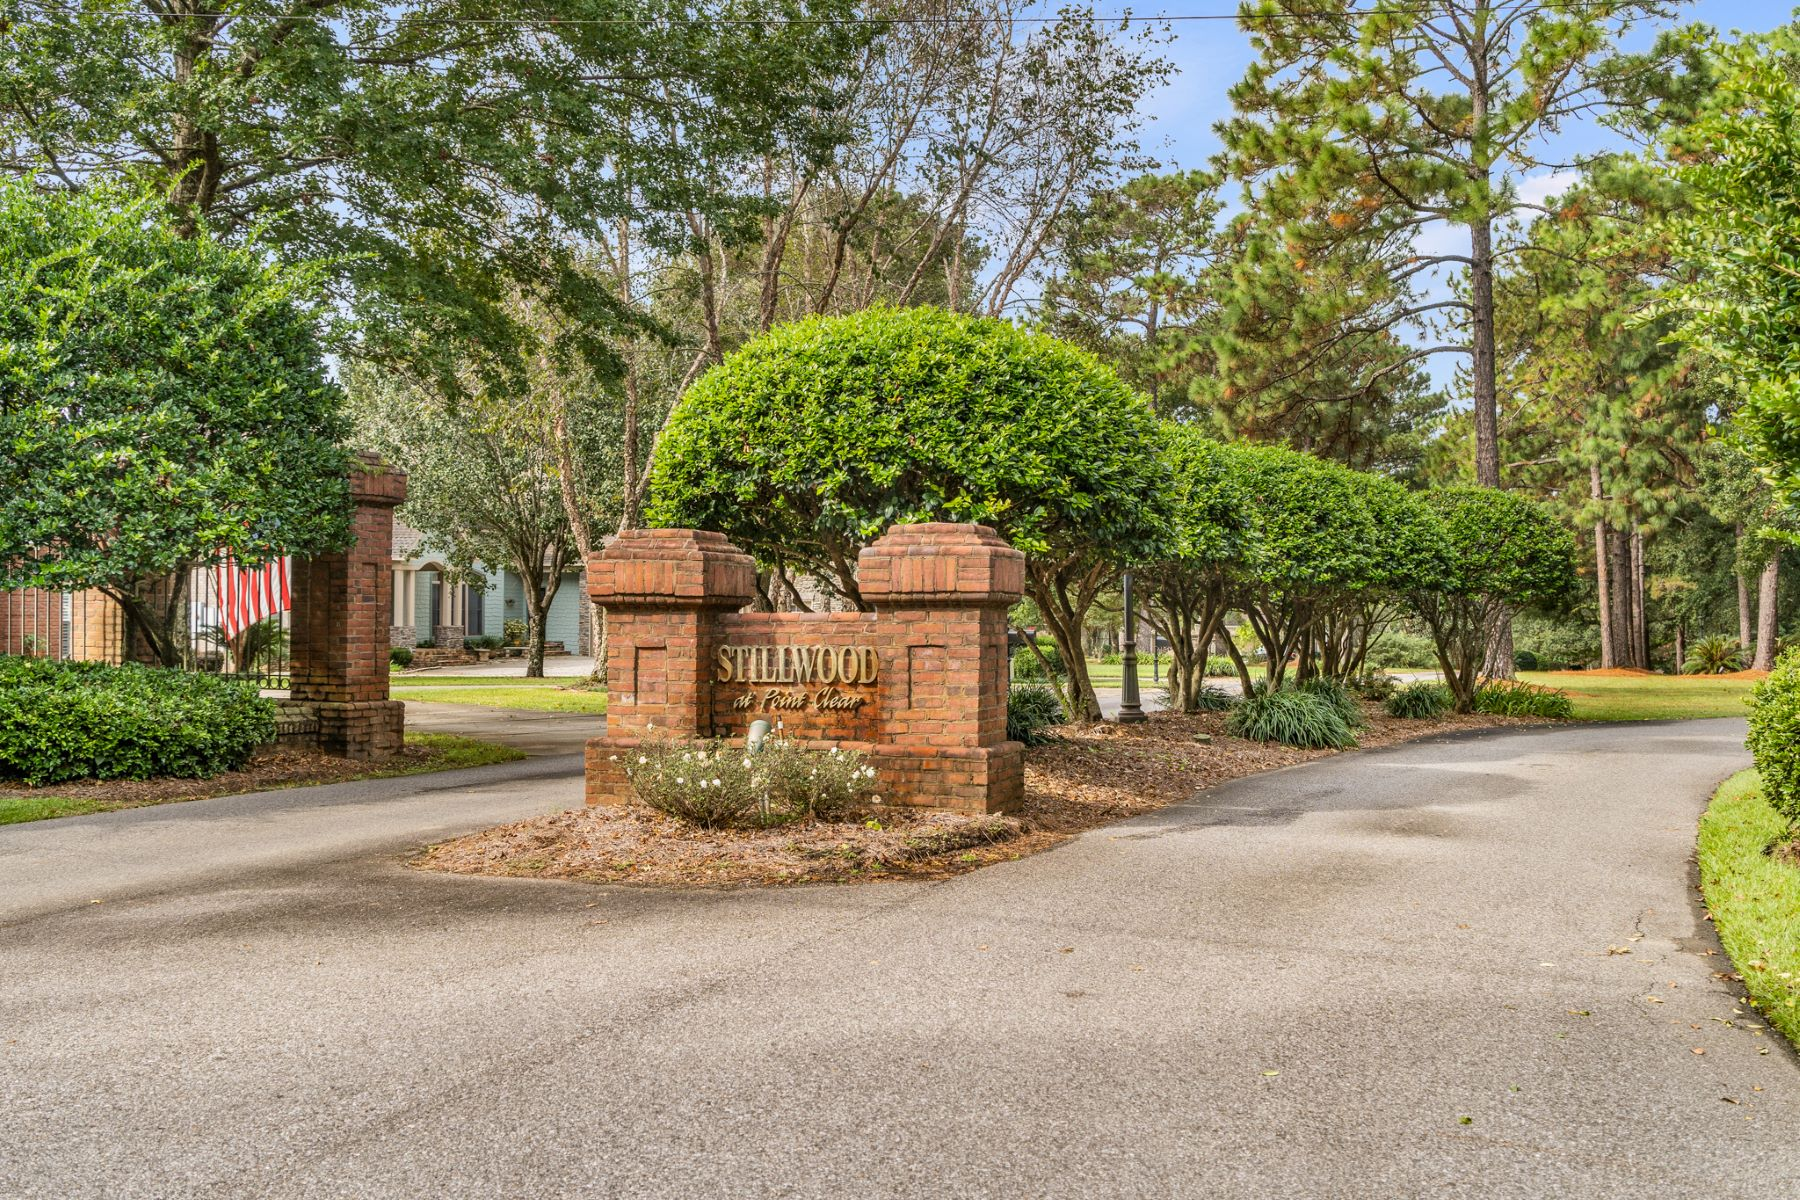 Terreno por un Venta en Stillwood At Point Clear 15 Stillwood Lane Fairhope, Alabama 36532 Estados Unidos